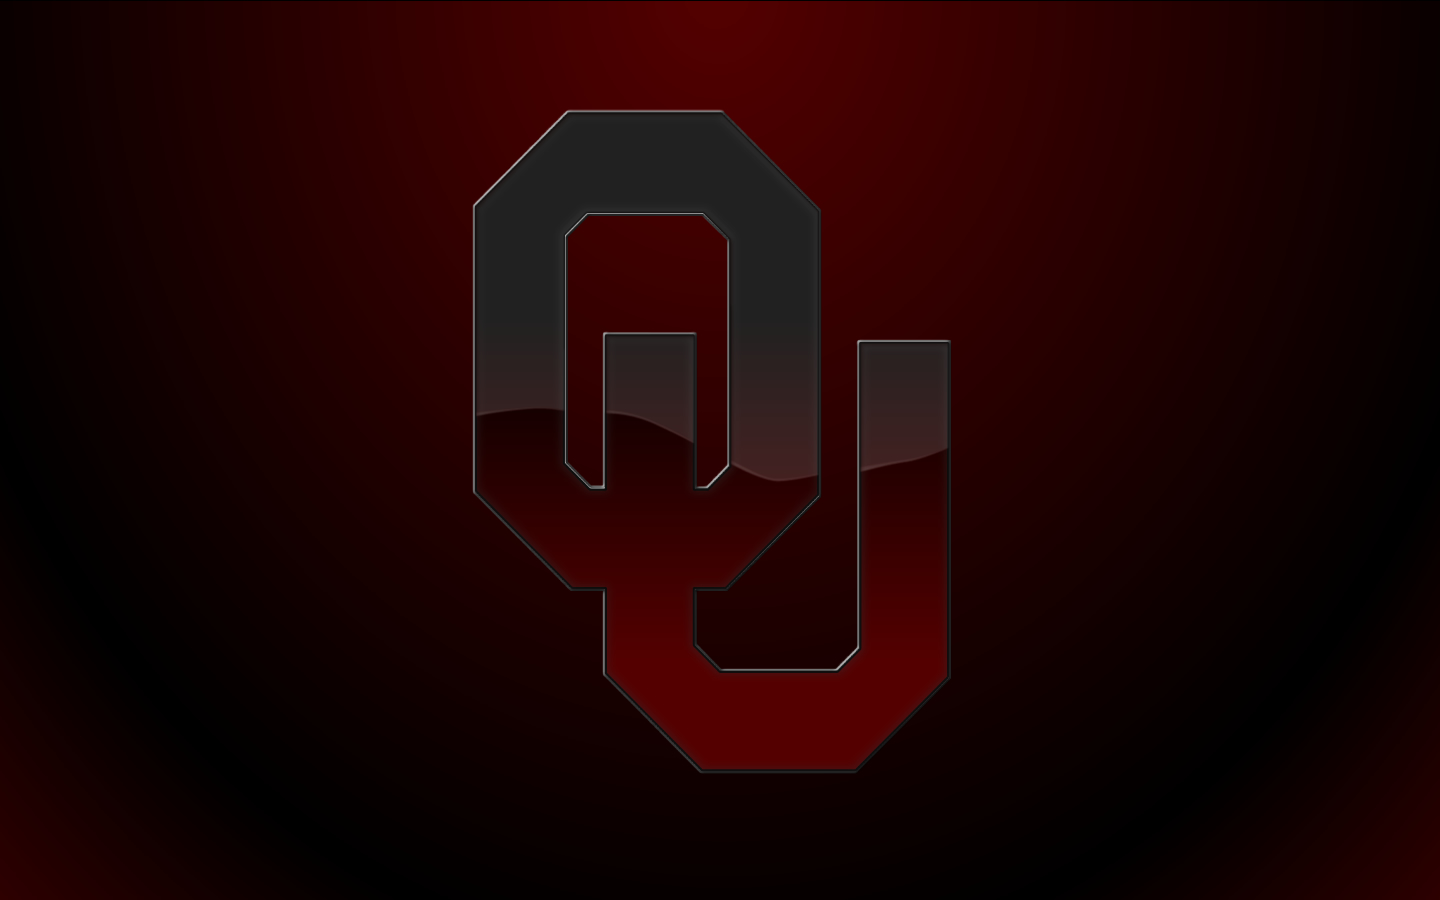 Oklahoma Sooners Wallpapers Browser Themes More 1440x900